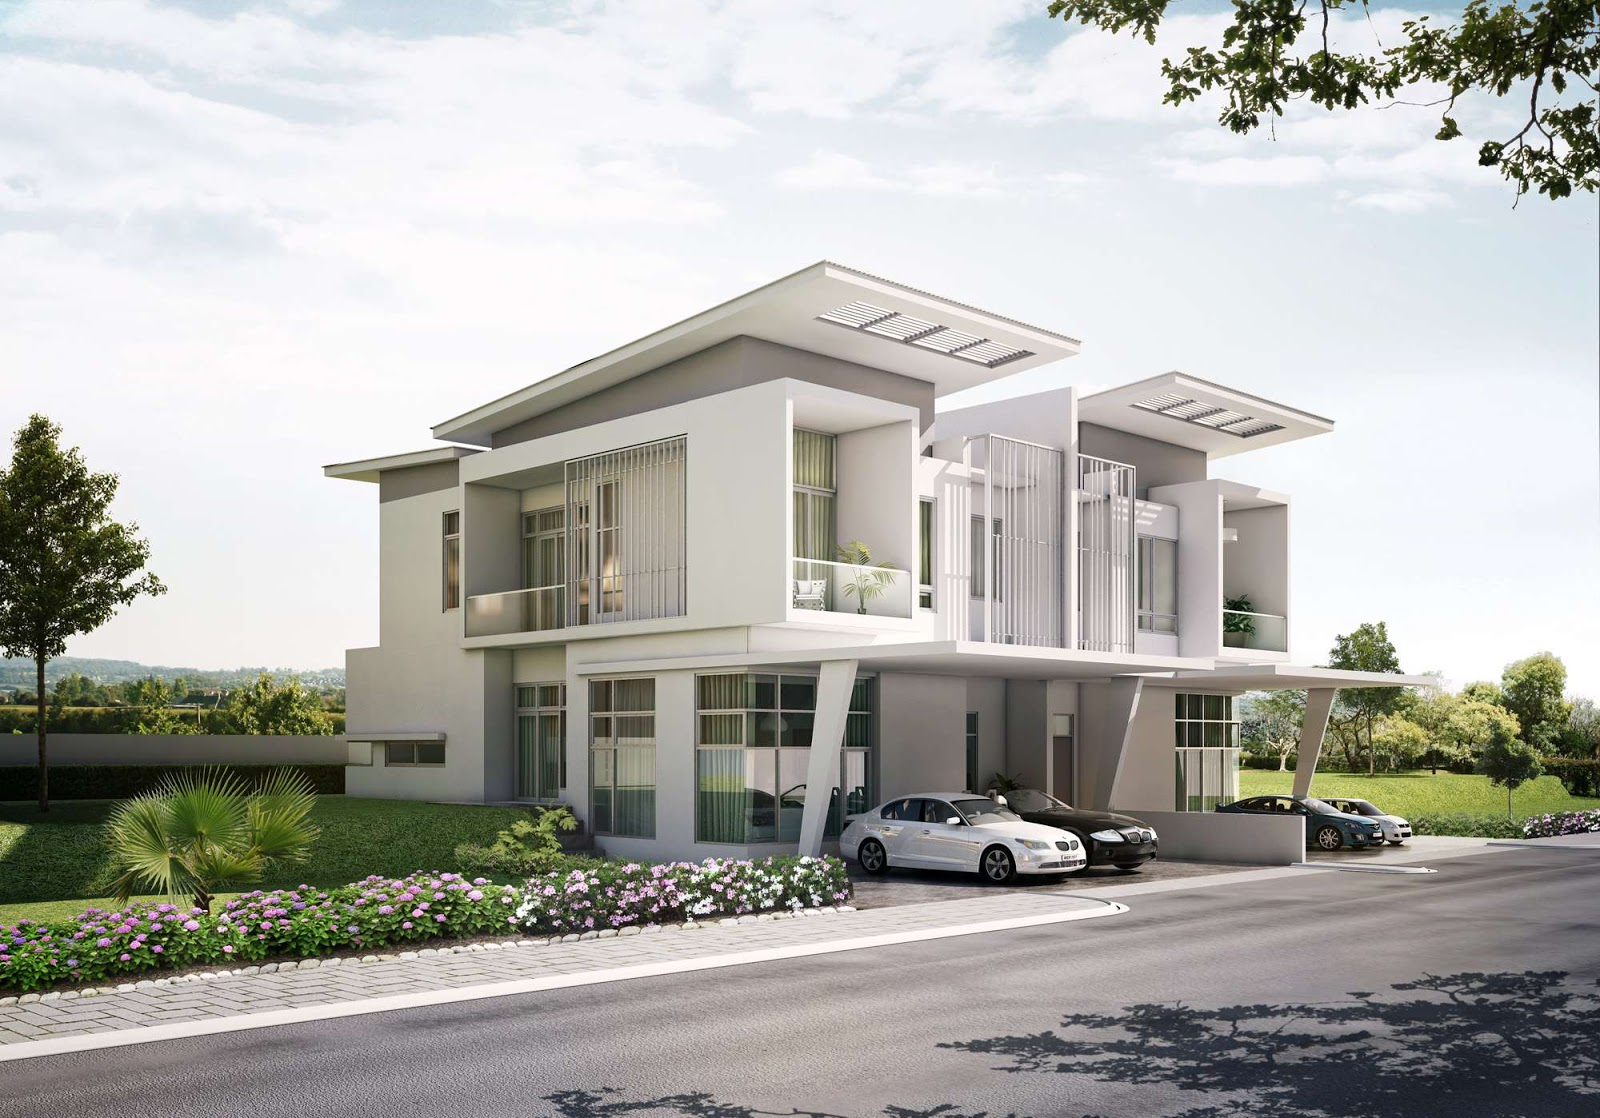 New home designs latest singapore modern homes exterior for Home outside design